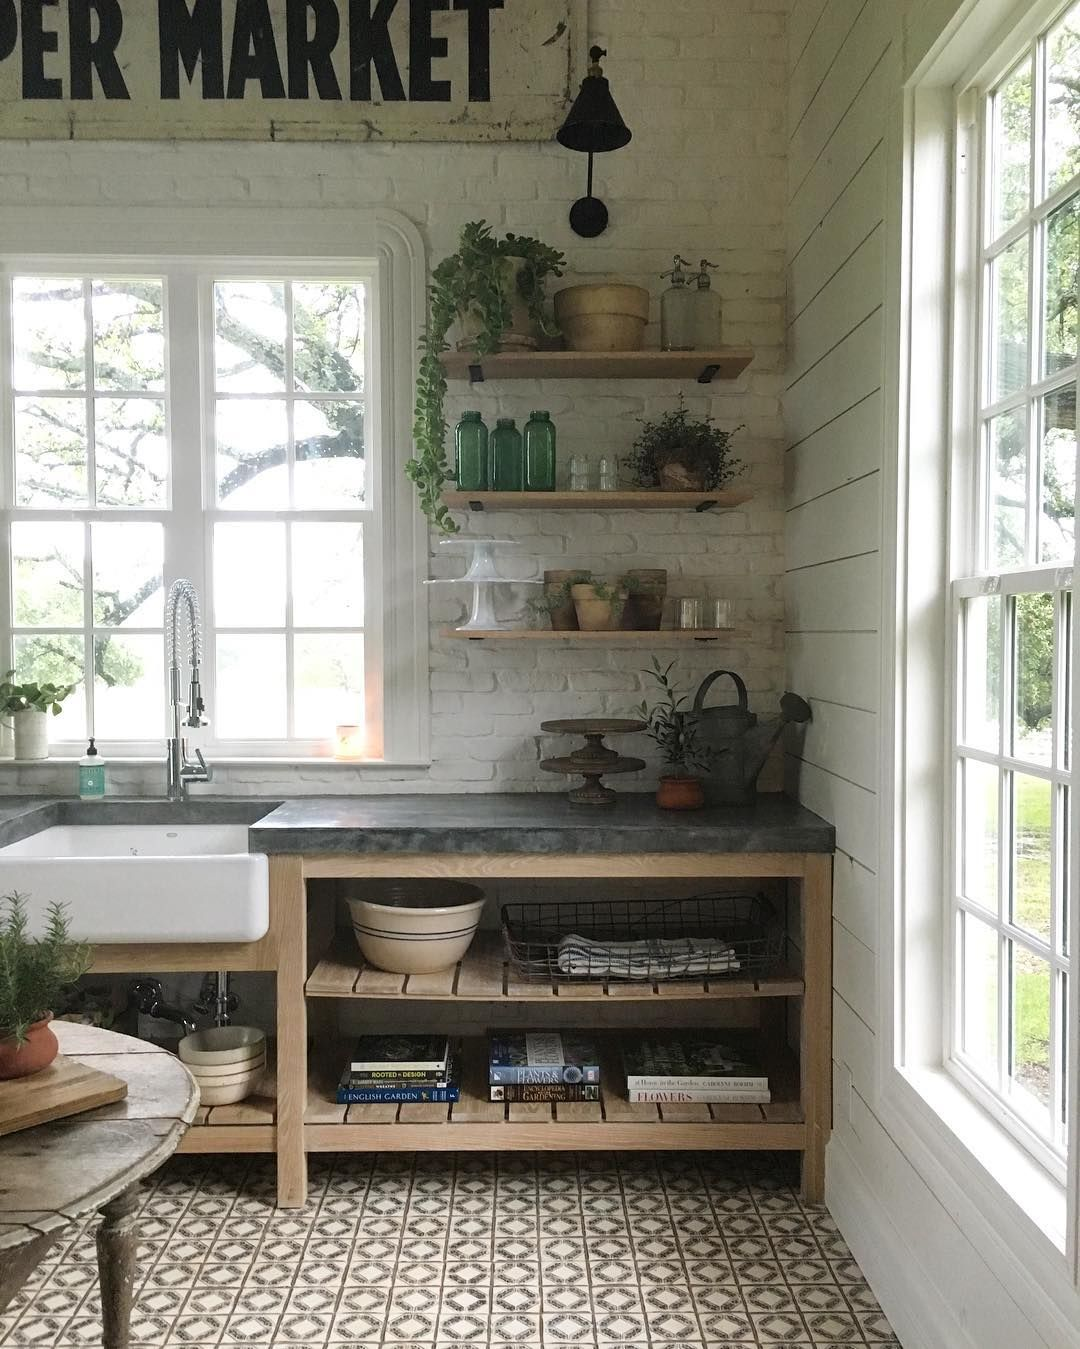 Joanna Gaines Kitchens And Galley: Tour Chip And Joanna Gaines' Farmhouse Like You've Never